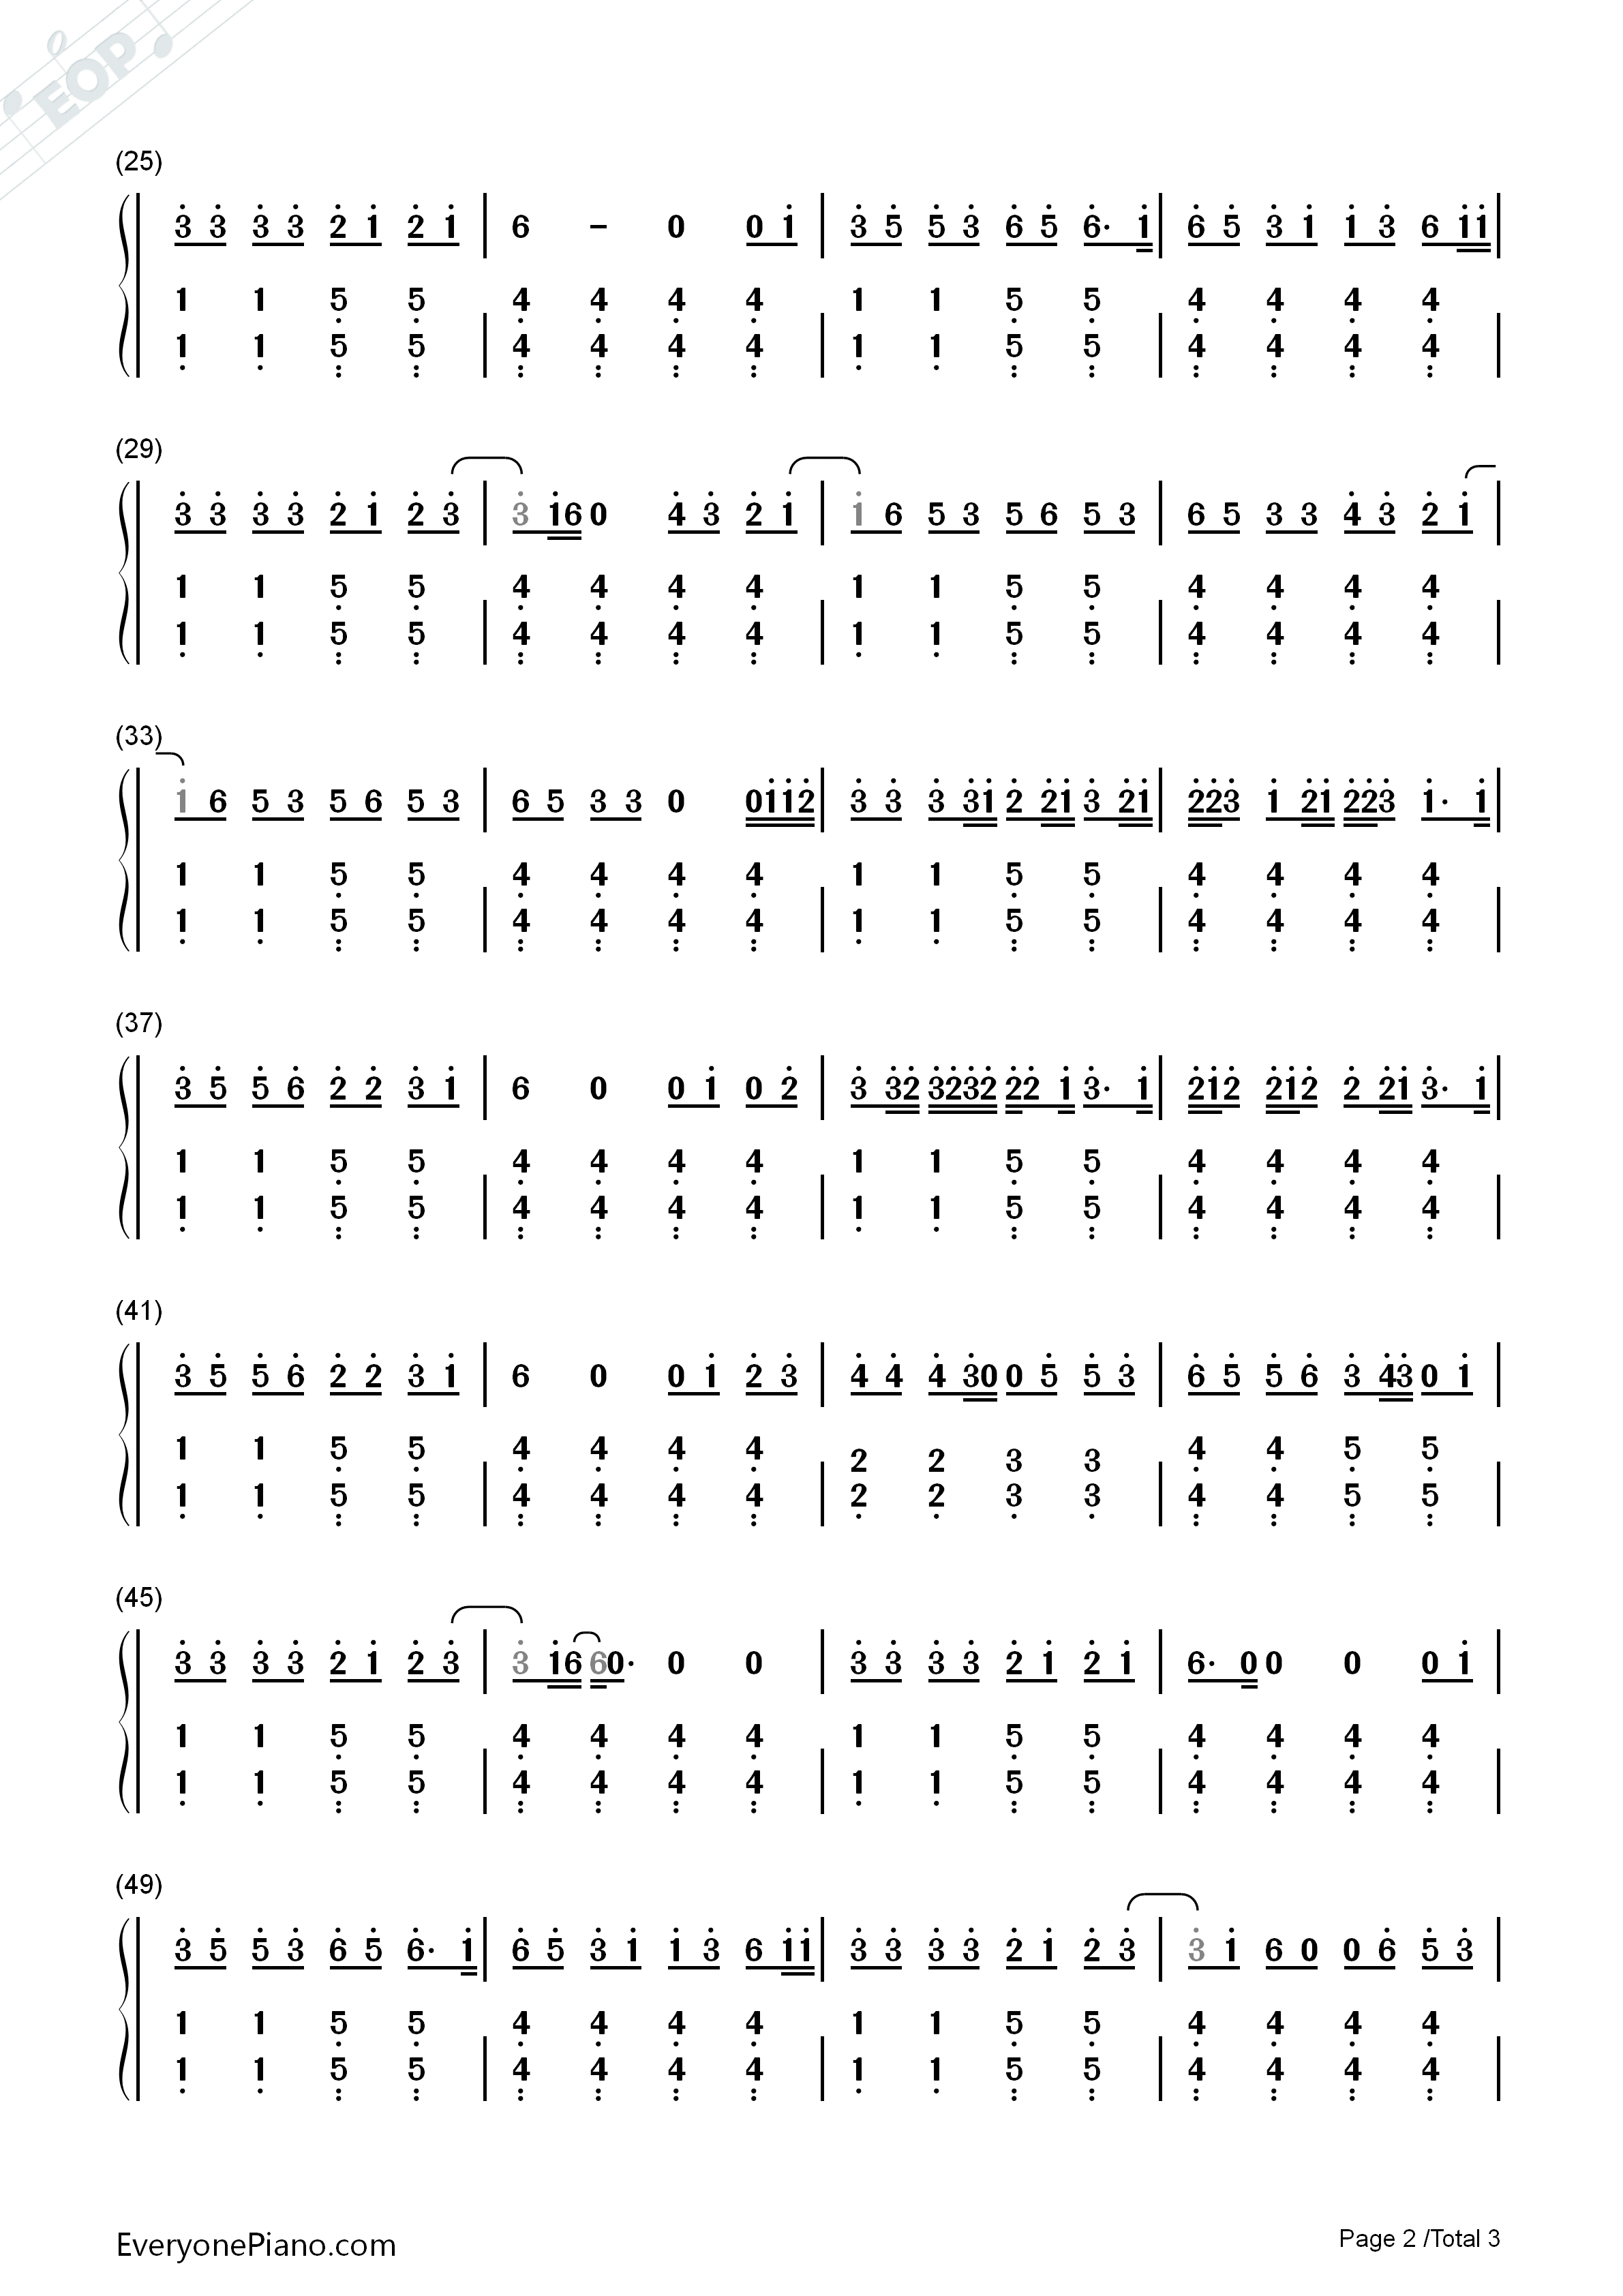 The lazy song bruno mars numbered musical notation preview 2 free listen now print sheet the lazy song bruno mars numbered musical notation preview 2 hexwebz Images